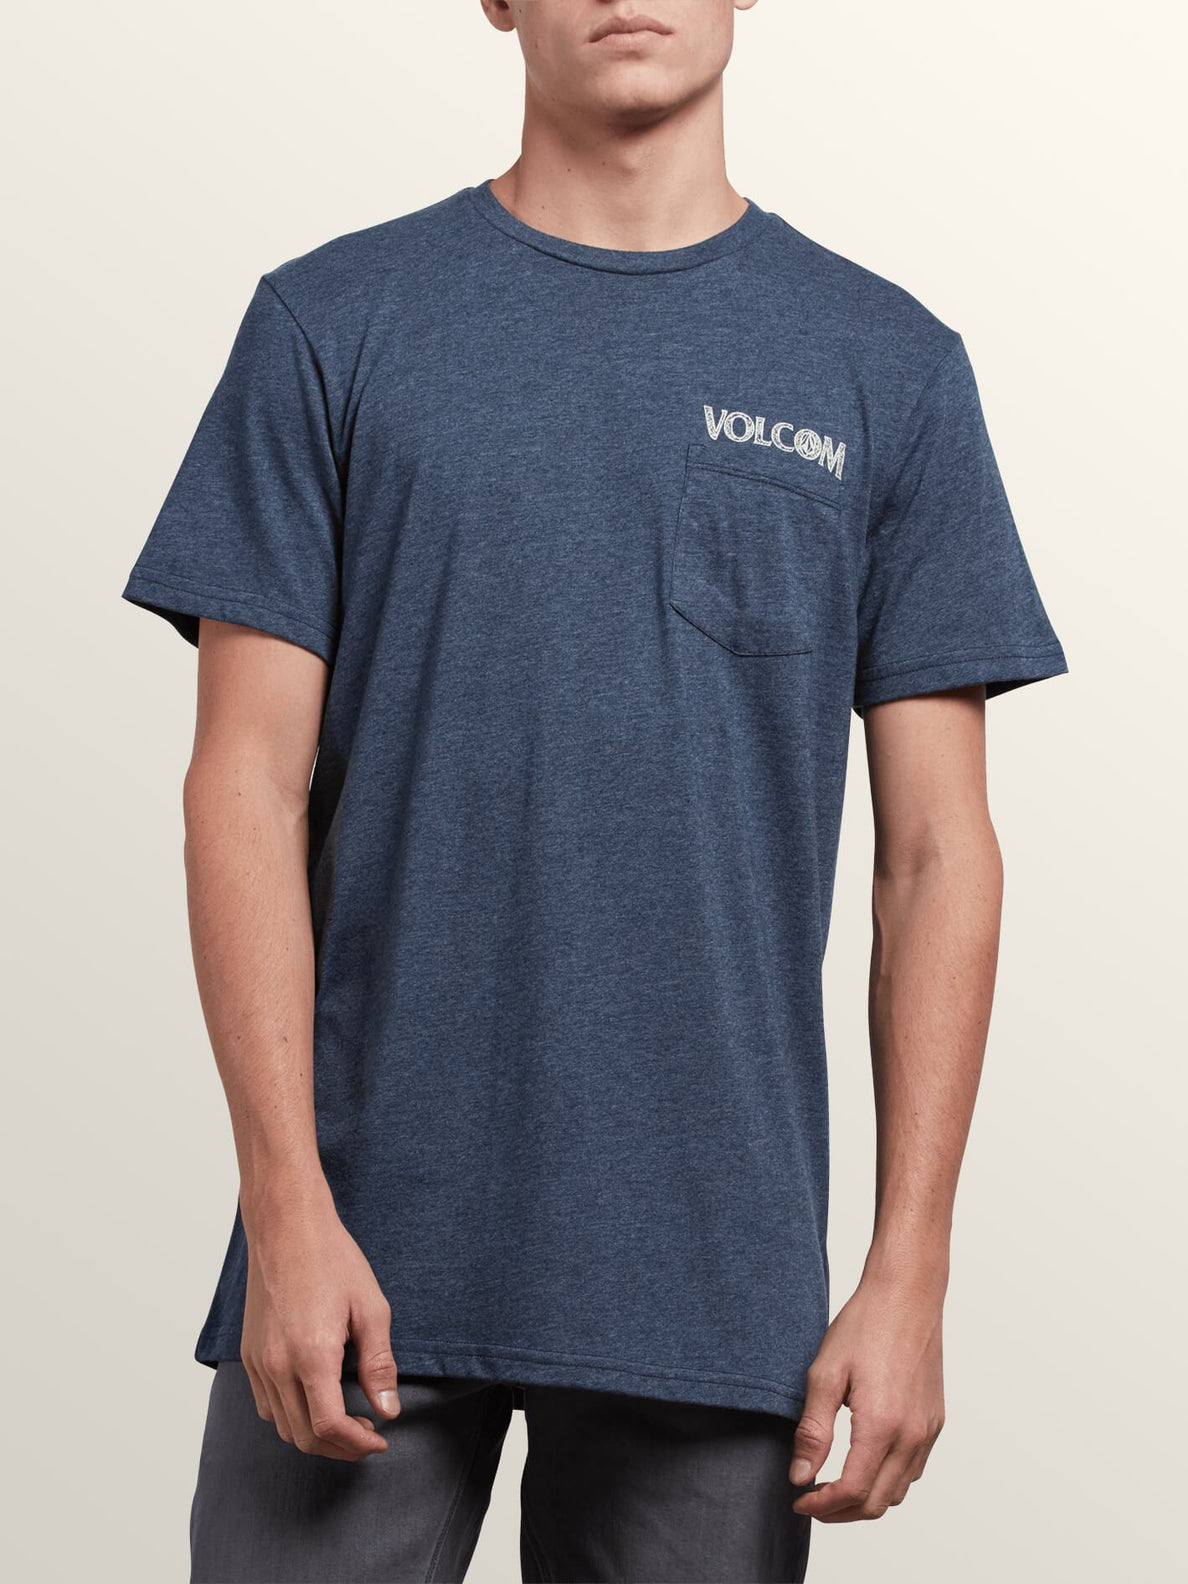 Center Short Sleeve Pocket Tee In Navy, Front View